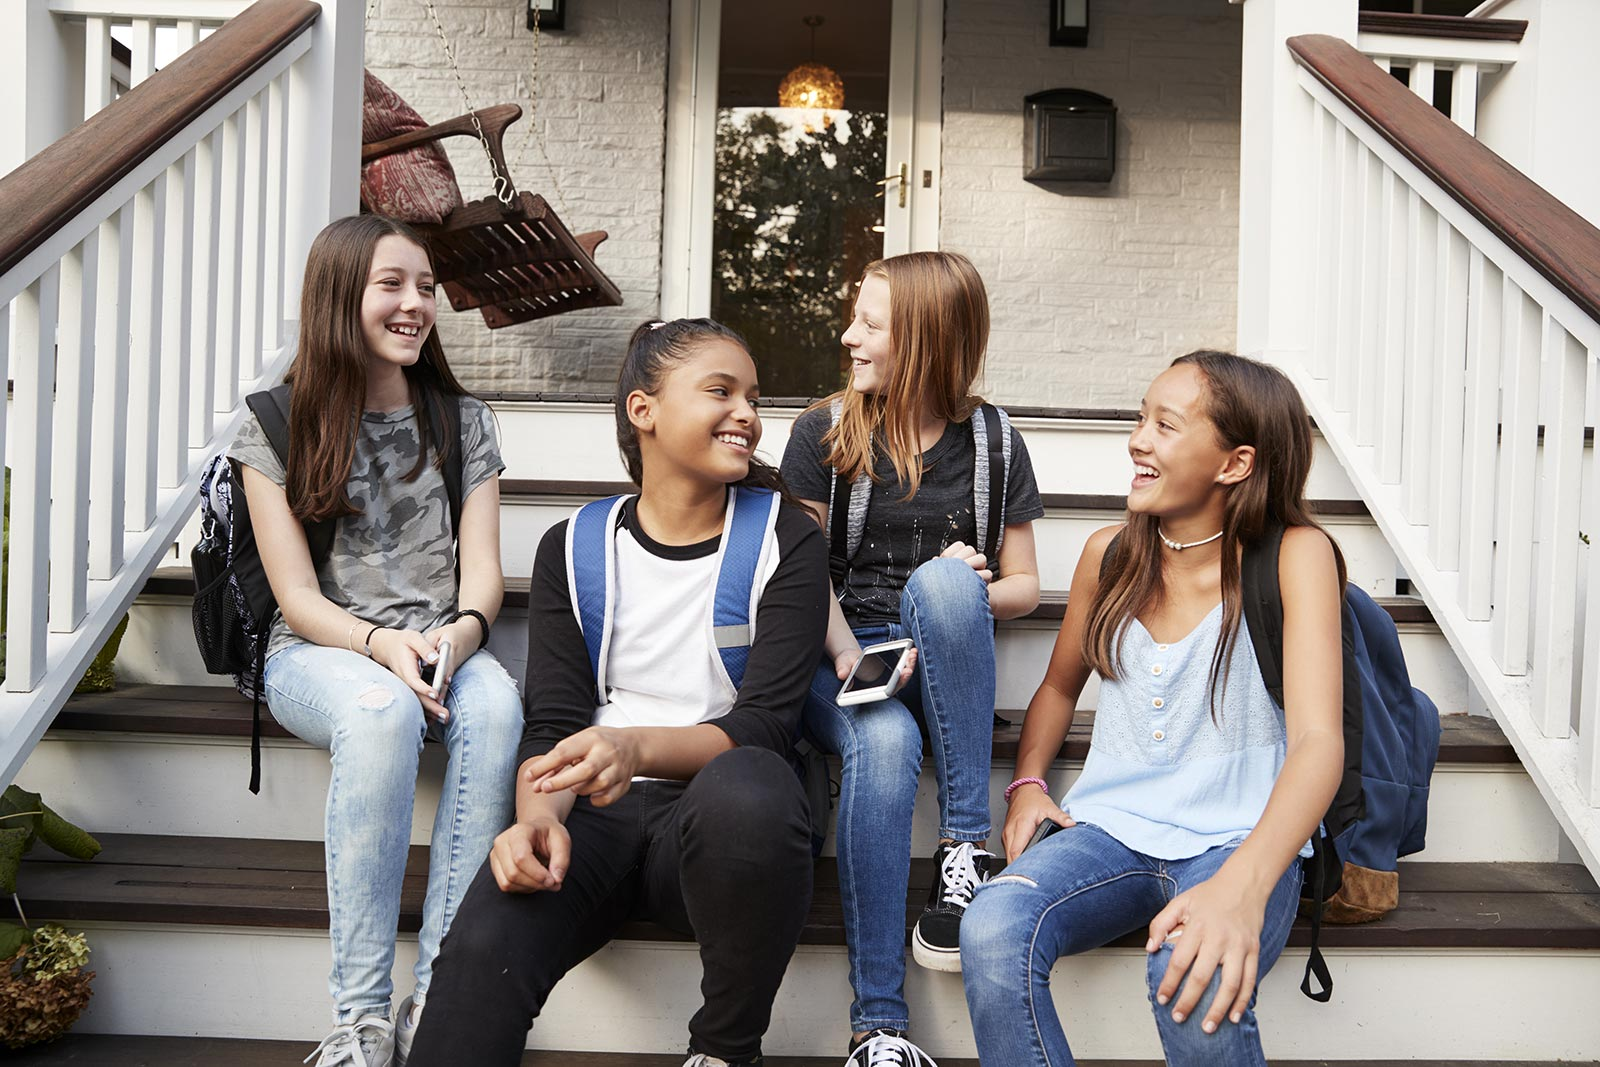 A group of 4 teenage girls chatting on the front steps of a house after school